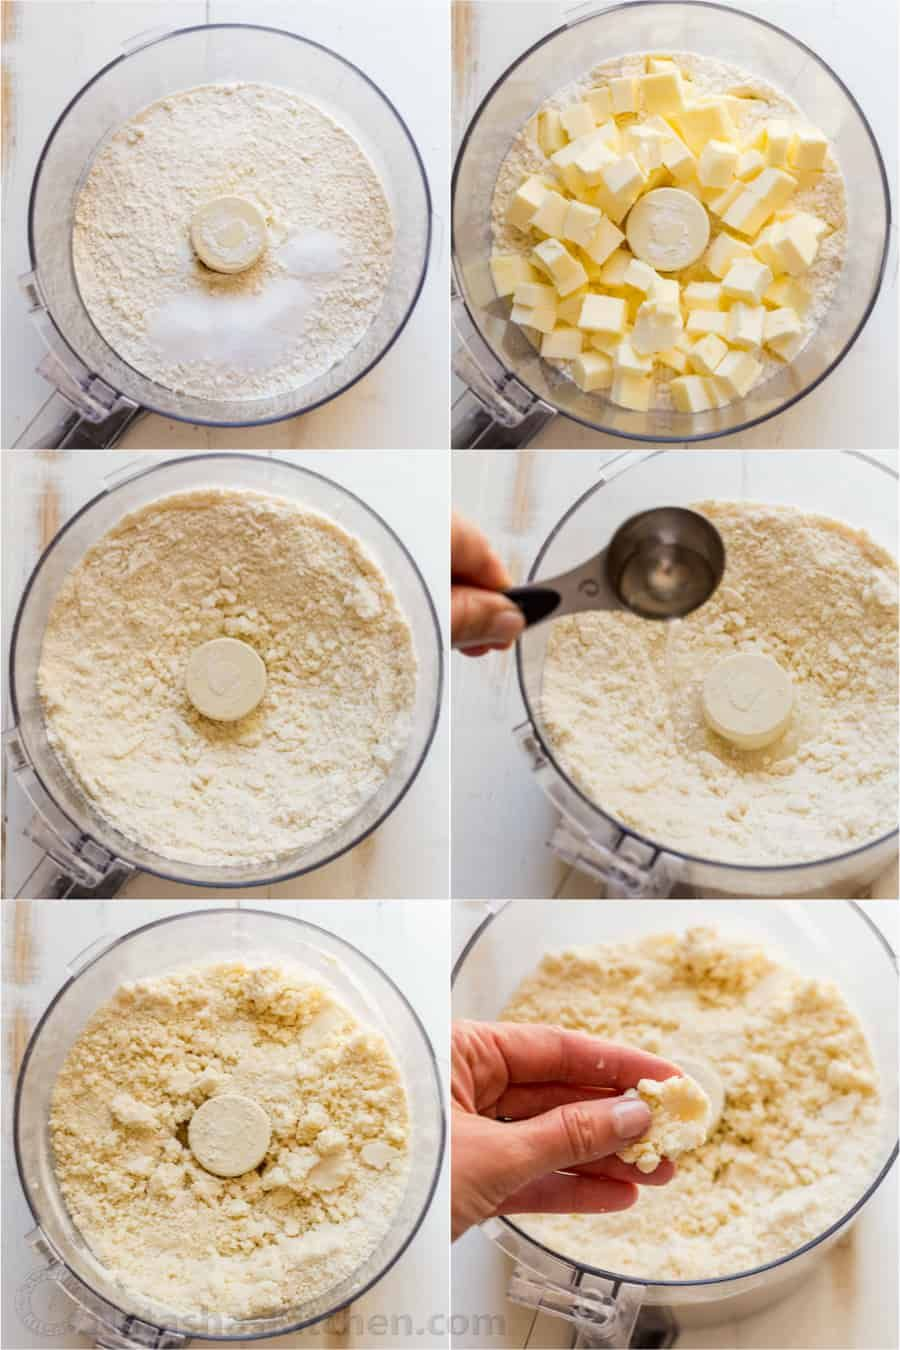 Easy Pie Crust Recipe (VIDEO) - NatashasKitchen.com